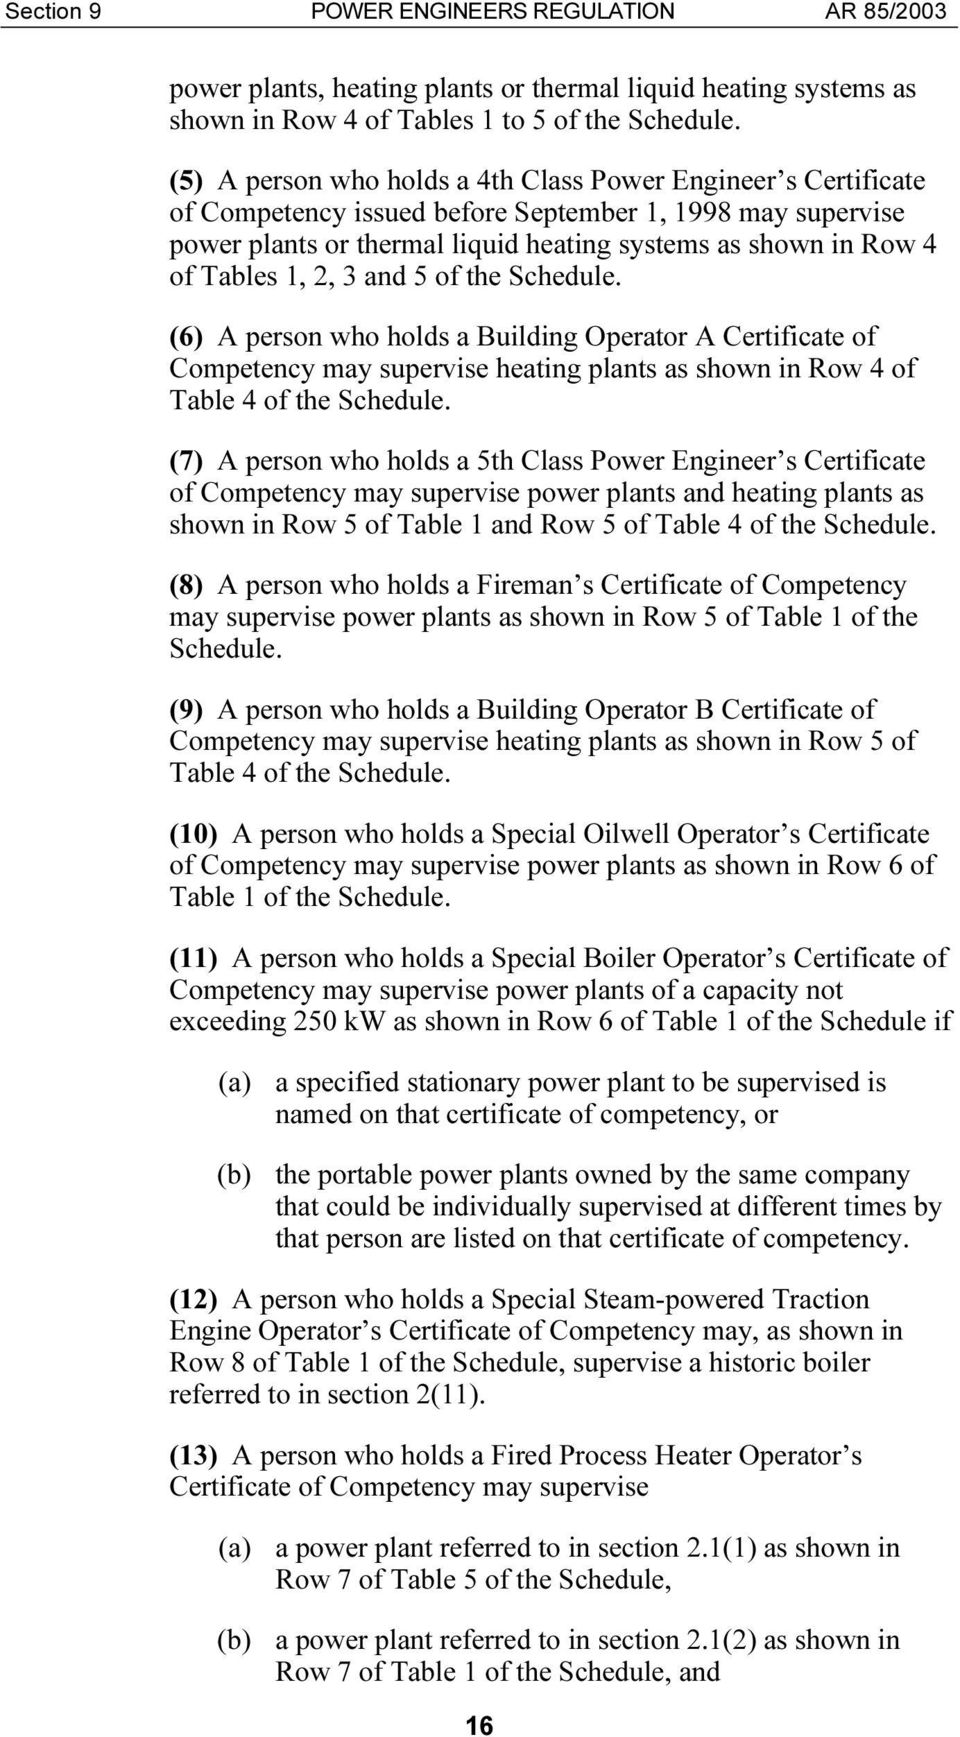 1, 2, 3 and 5 of the Schedule. (6) A person who holds a Building Operator A Certificate of Competency may supervise heating plants as shown in Row 4 of Table 4 of the Schedule.